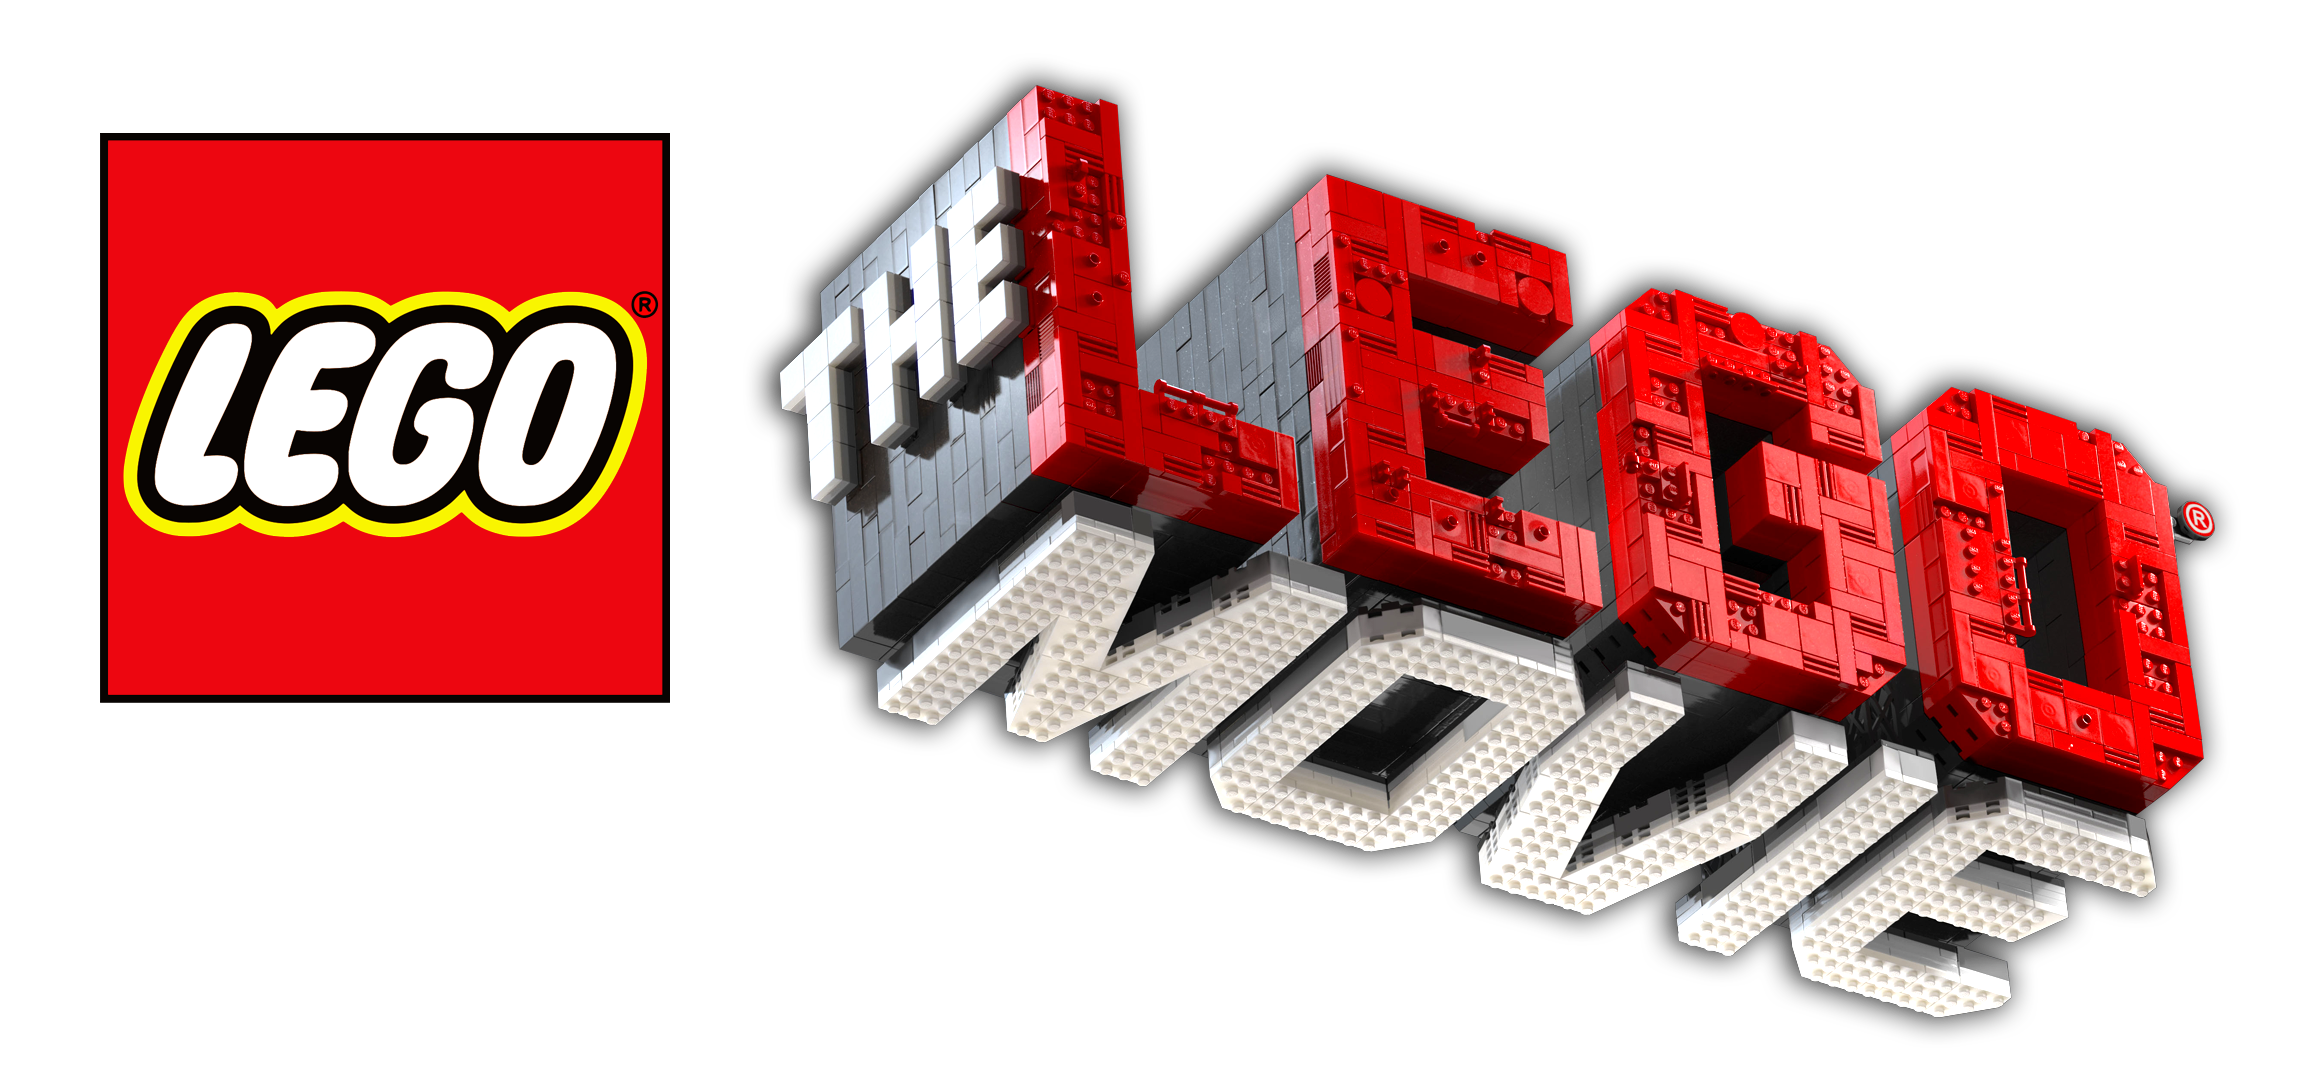 The Lego Movie Transparent Image PNG Image